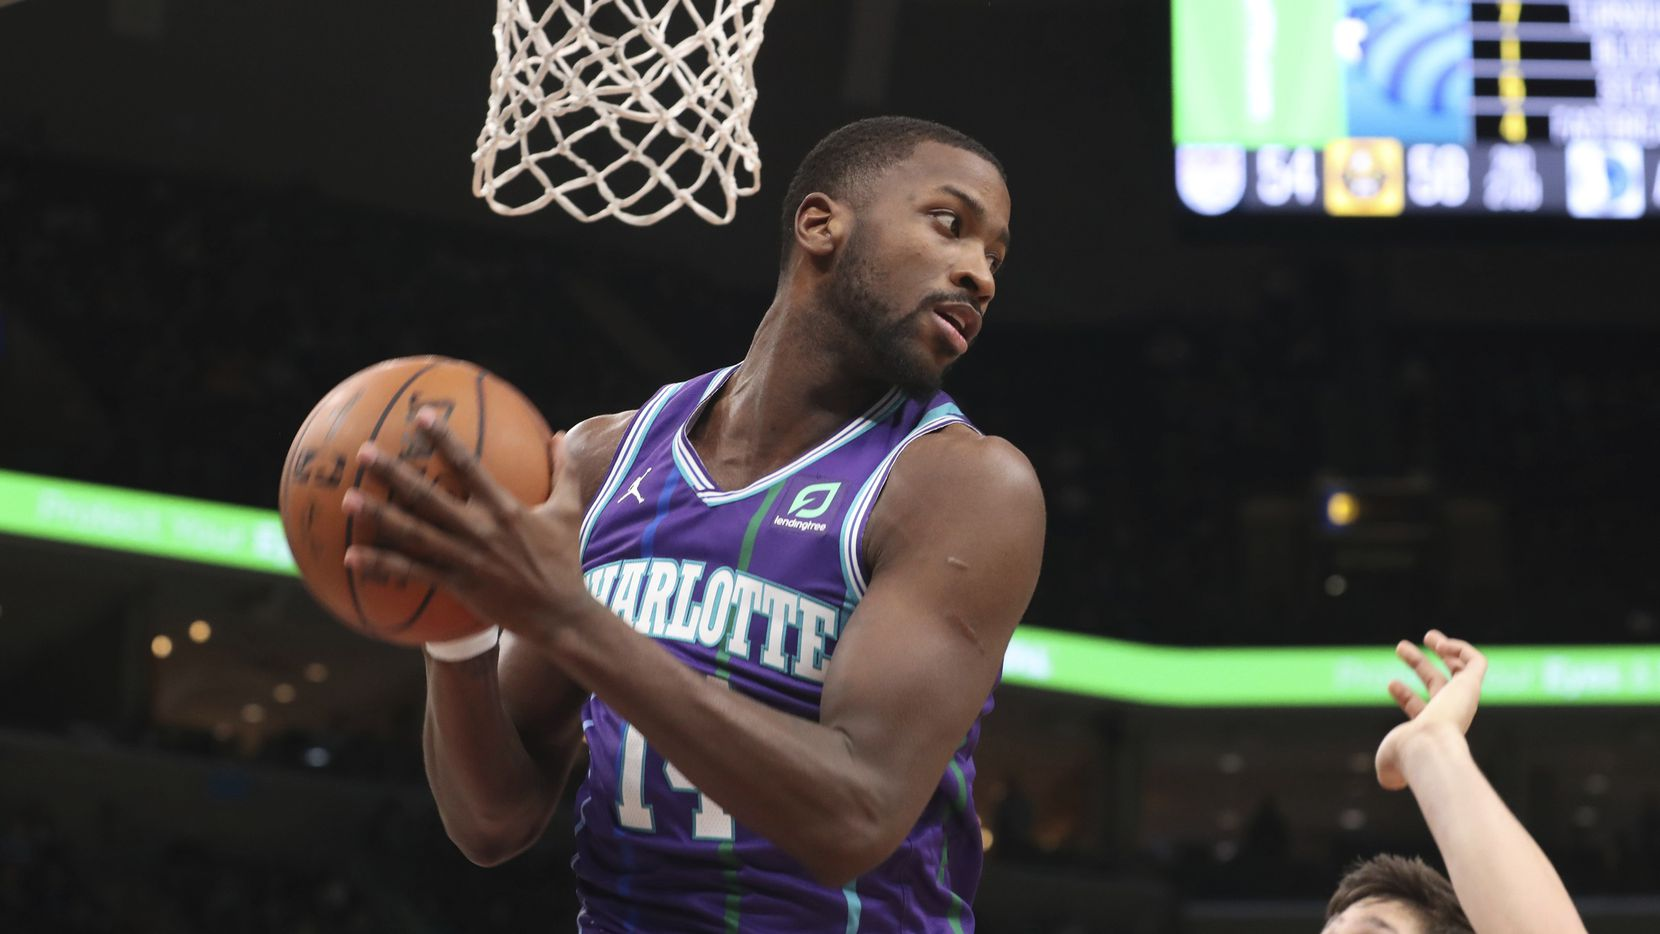 Charlotte Hornets forward Michael Kidd-Gilchrist (14) grabs a rebound in the first half of an NBA basketball game against the Memphis Grizzlies, Sunday, Dec. 29, 2019, in Memphis, Tenn.